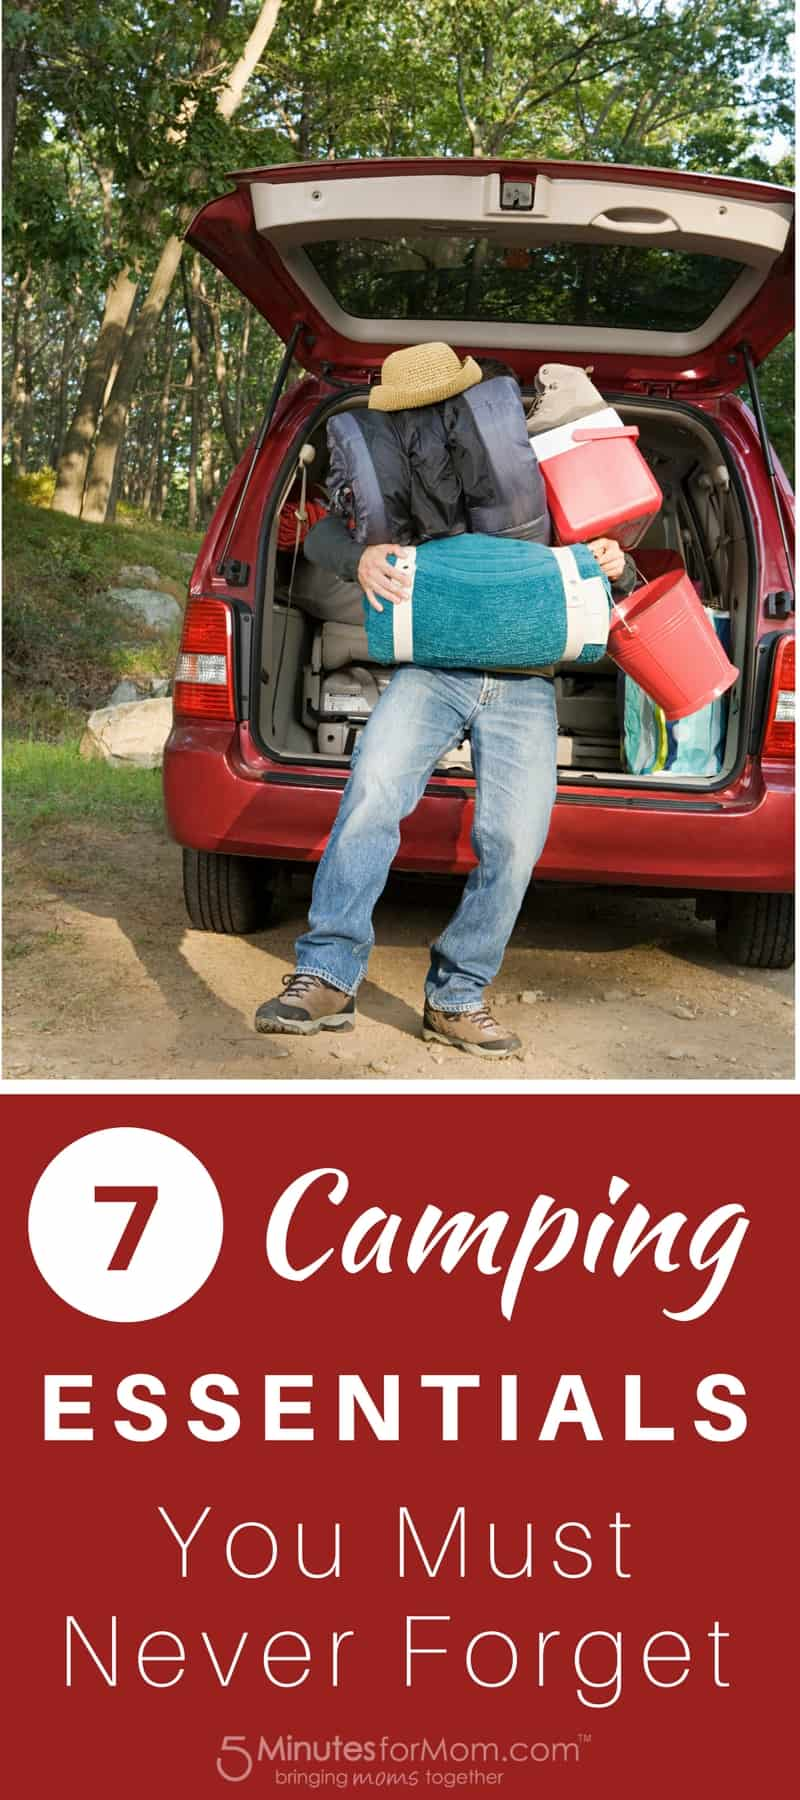 7 Camping Essentials You Must Never Forget